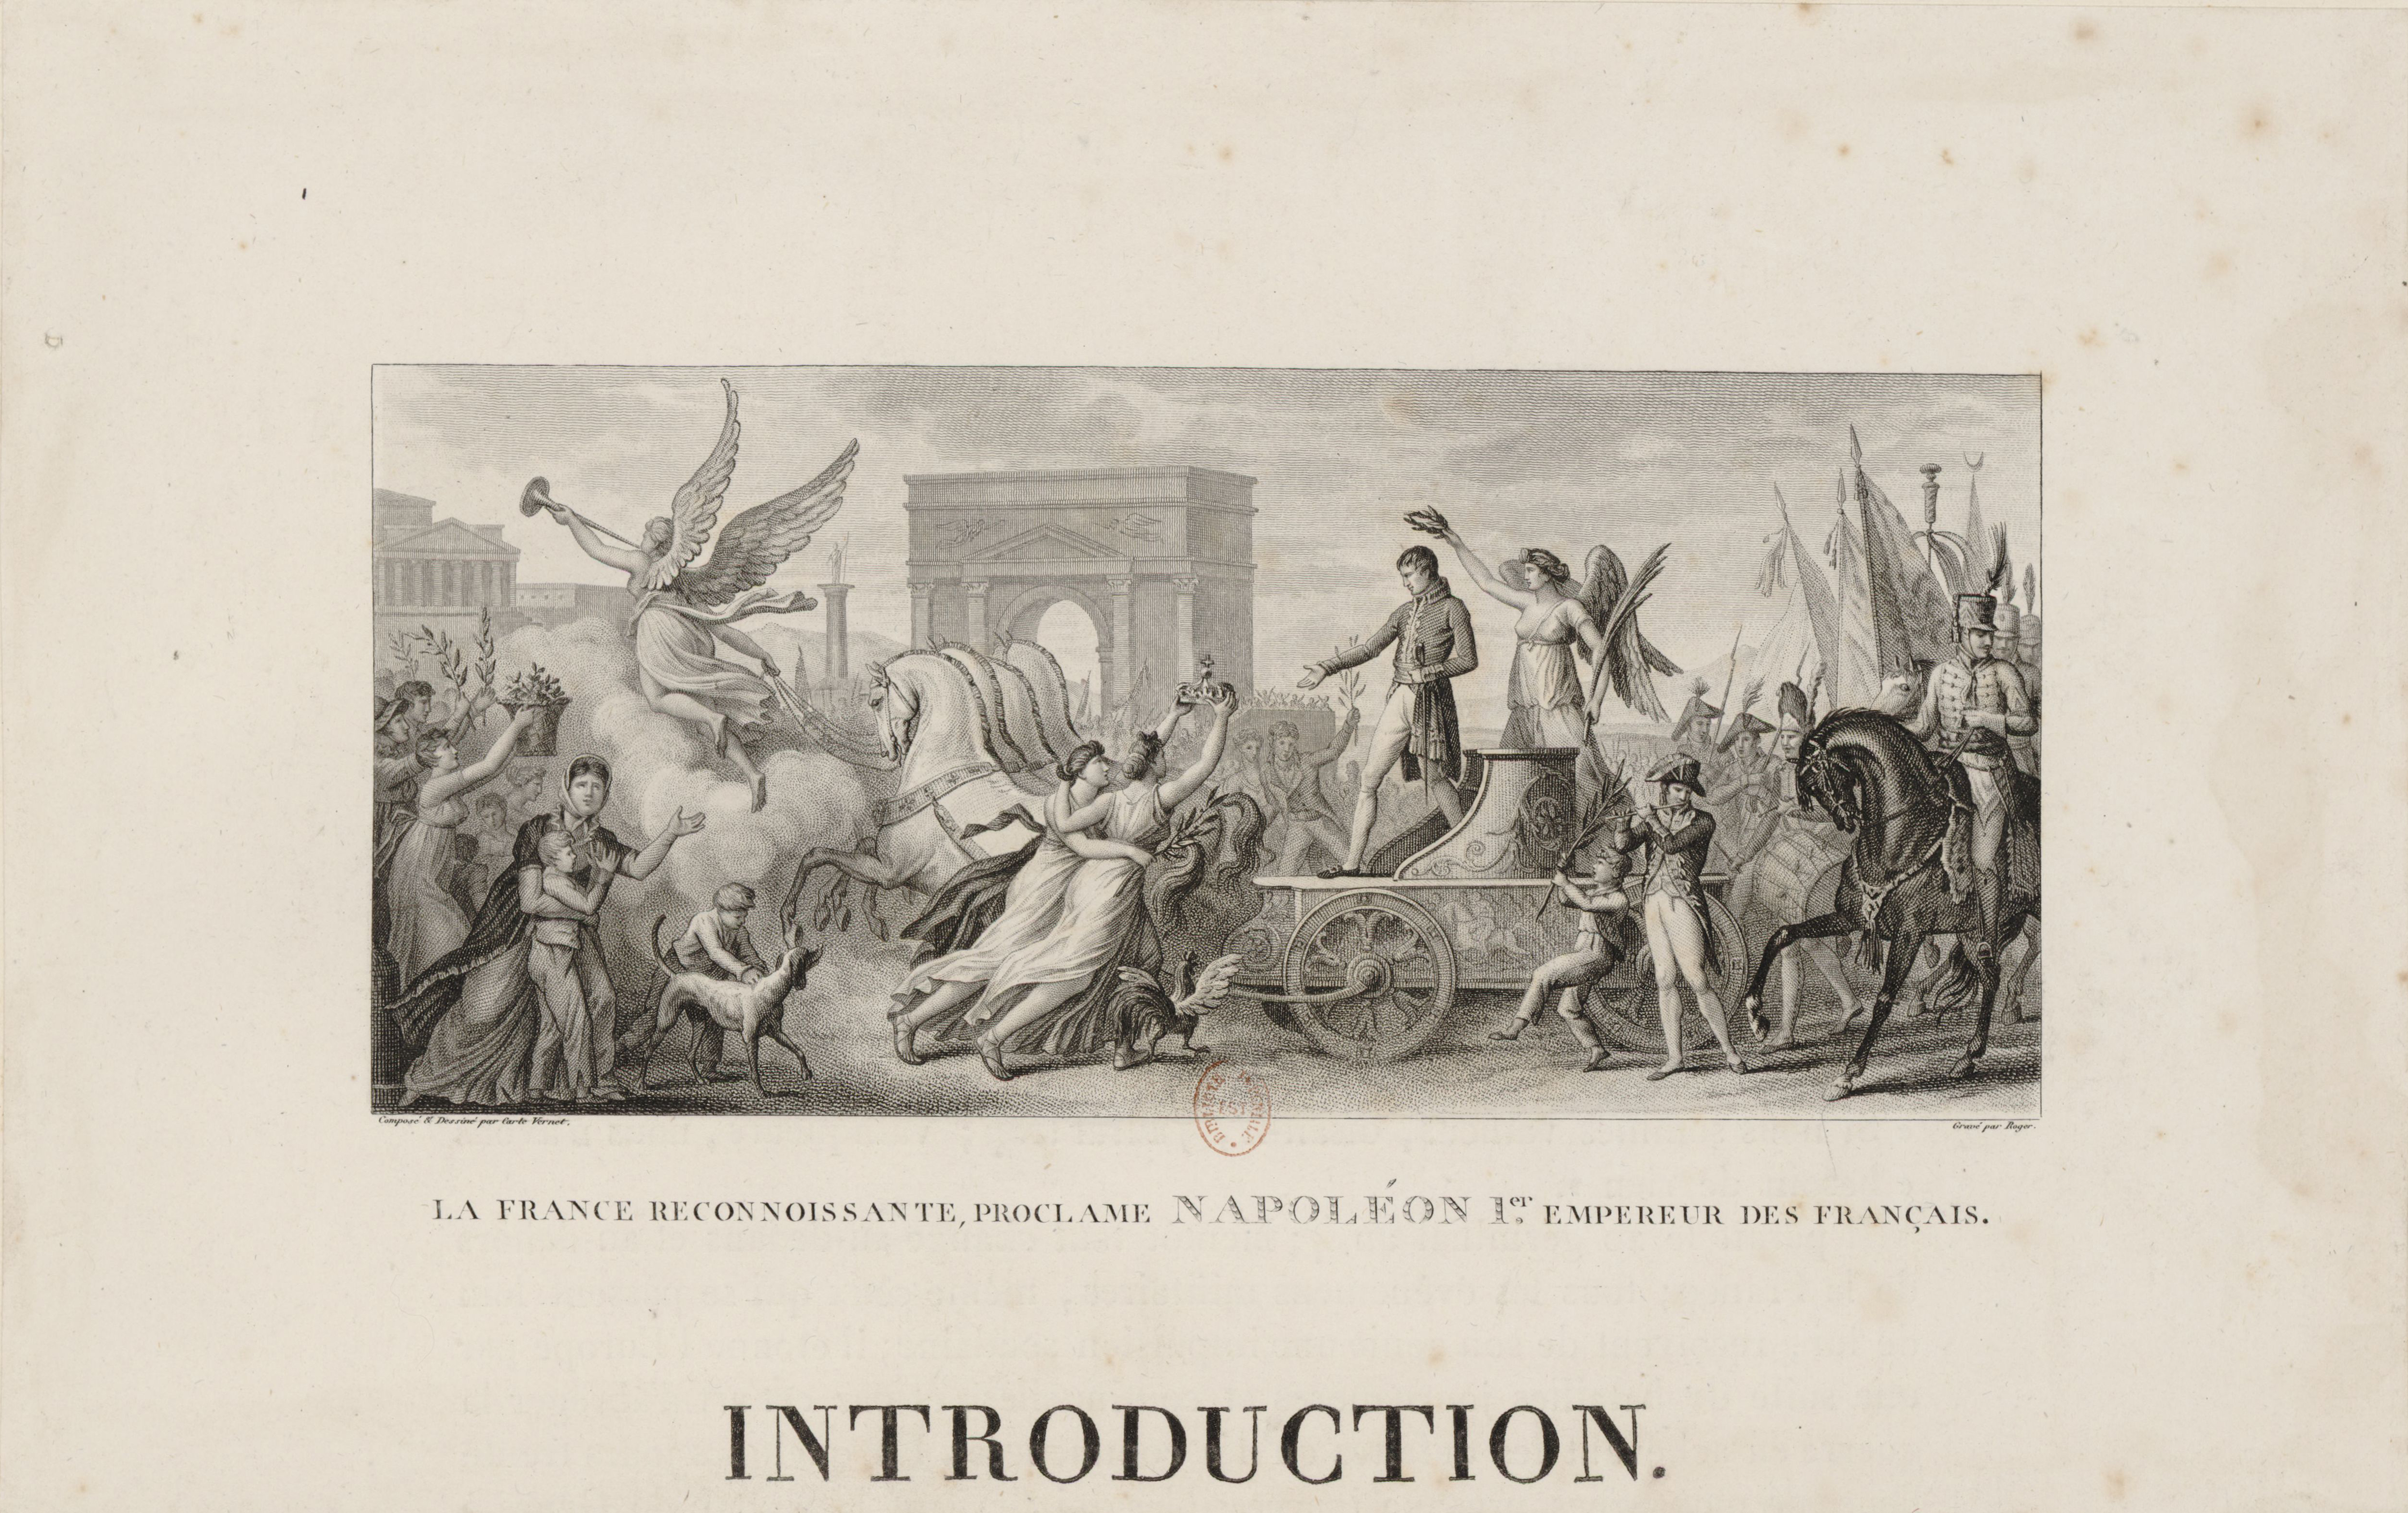 Engraving of symbolic scene combining Roman and French themes